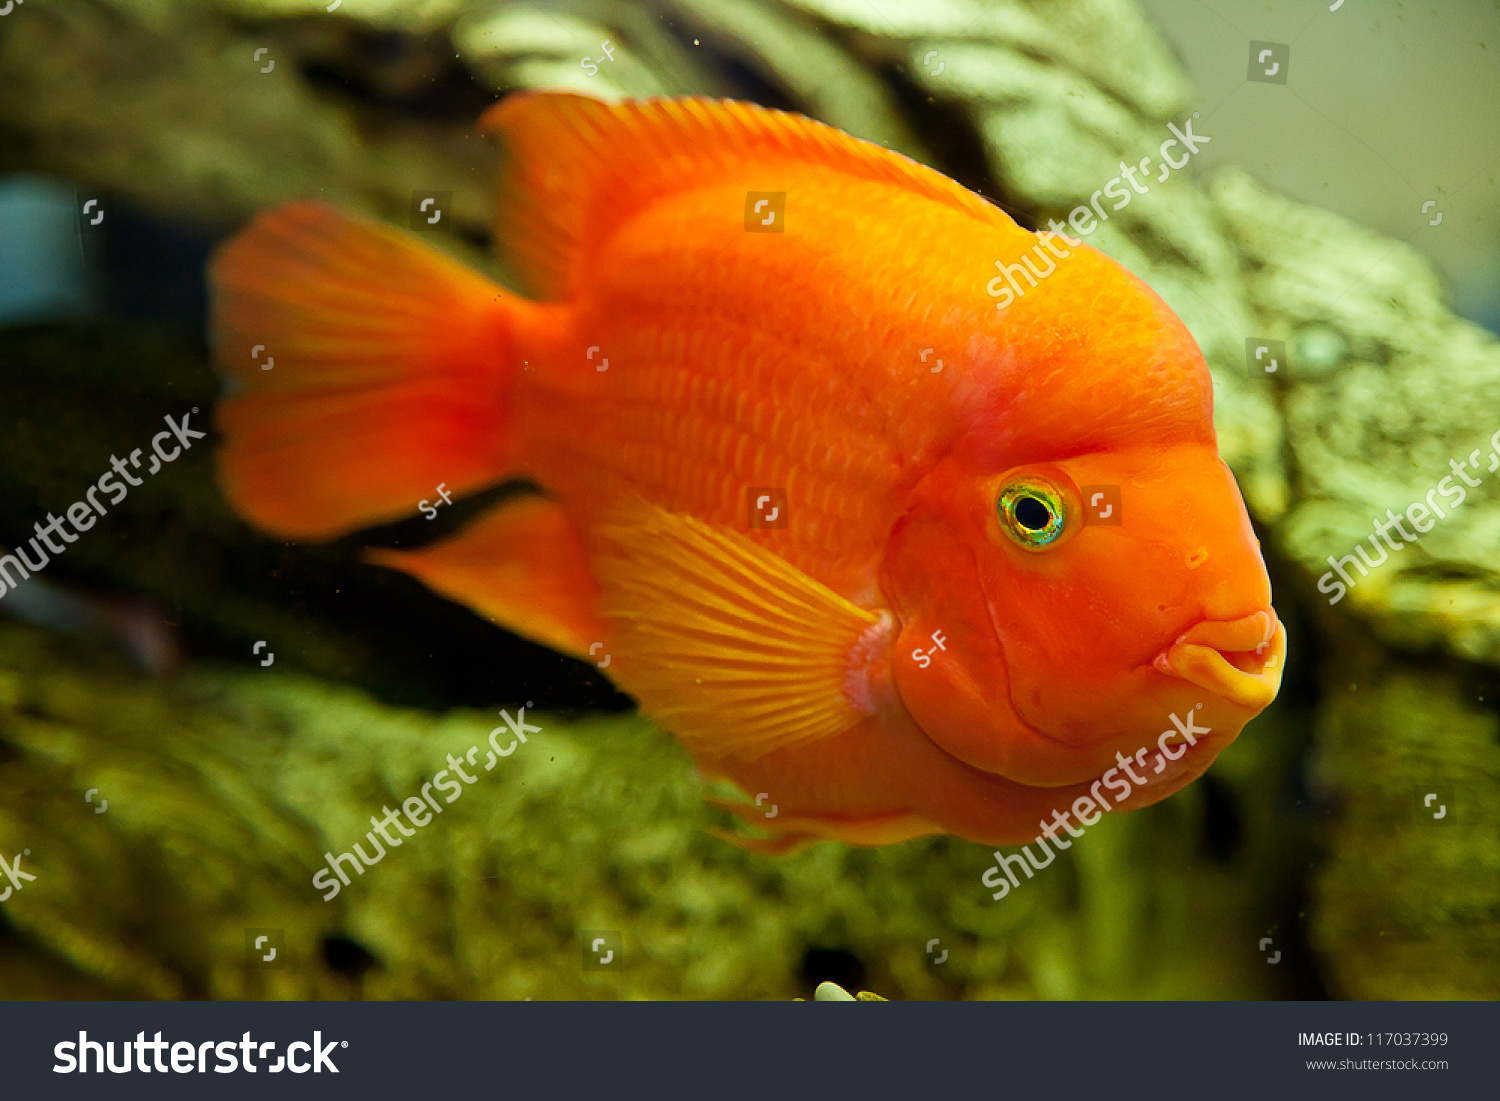 Tropical Freshwater Aquarium Big Red Fish Stock Photo (Royalty Free ...